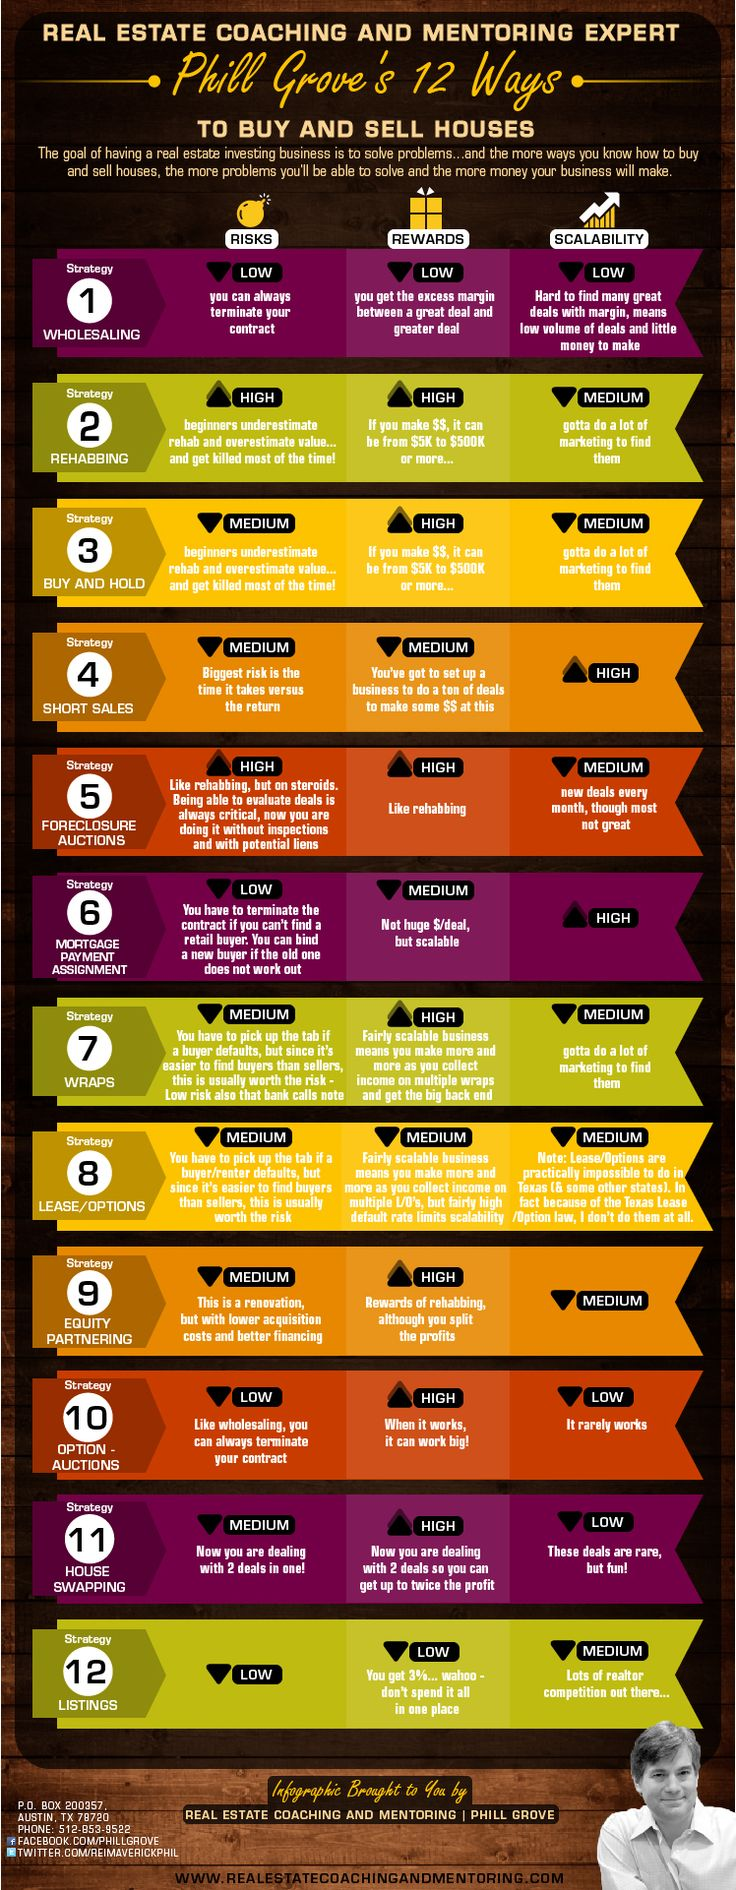 What are the 12 Ways to Buy and Sell Real Estate? The infographic below details the 12 different ways to invest, the level of risk, reward and scalability. For more information, please visit http://realestatecoachingandmentoring.com/12-ways-to-buy-and-sell-real-estate-infographic/